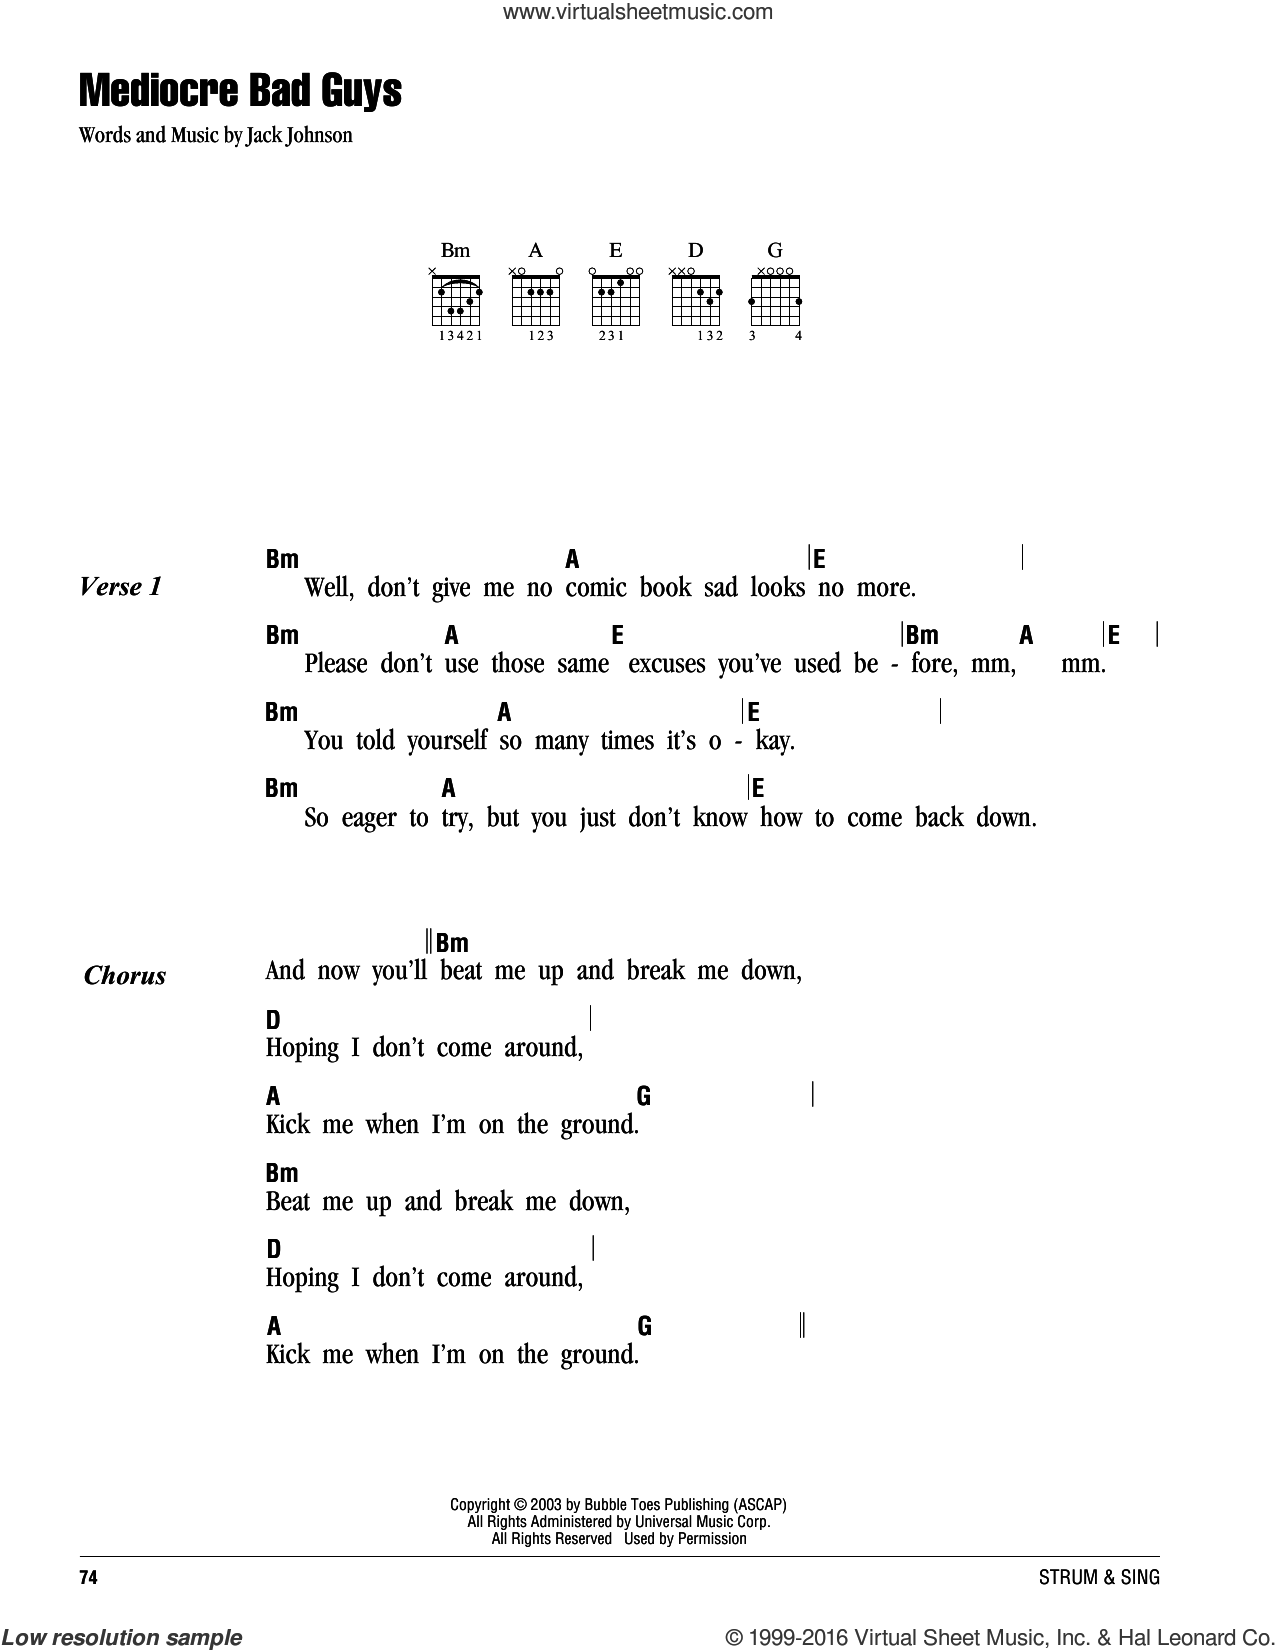 Mediocre Bad Guys sheet music for guitar (chords) by Jack Johnson